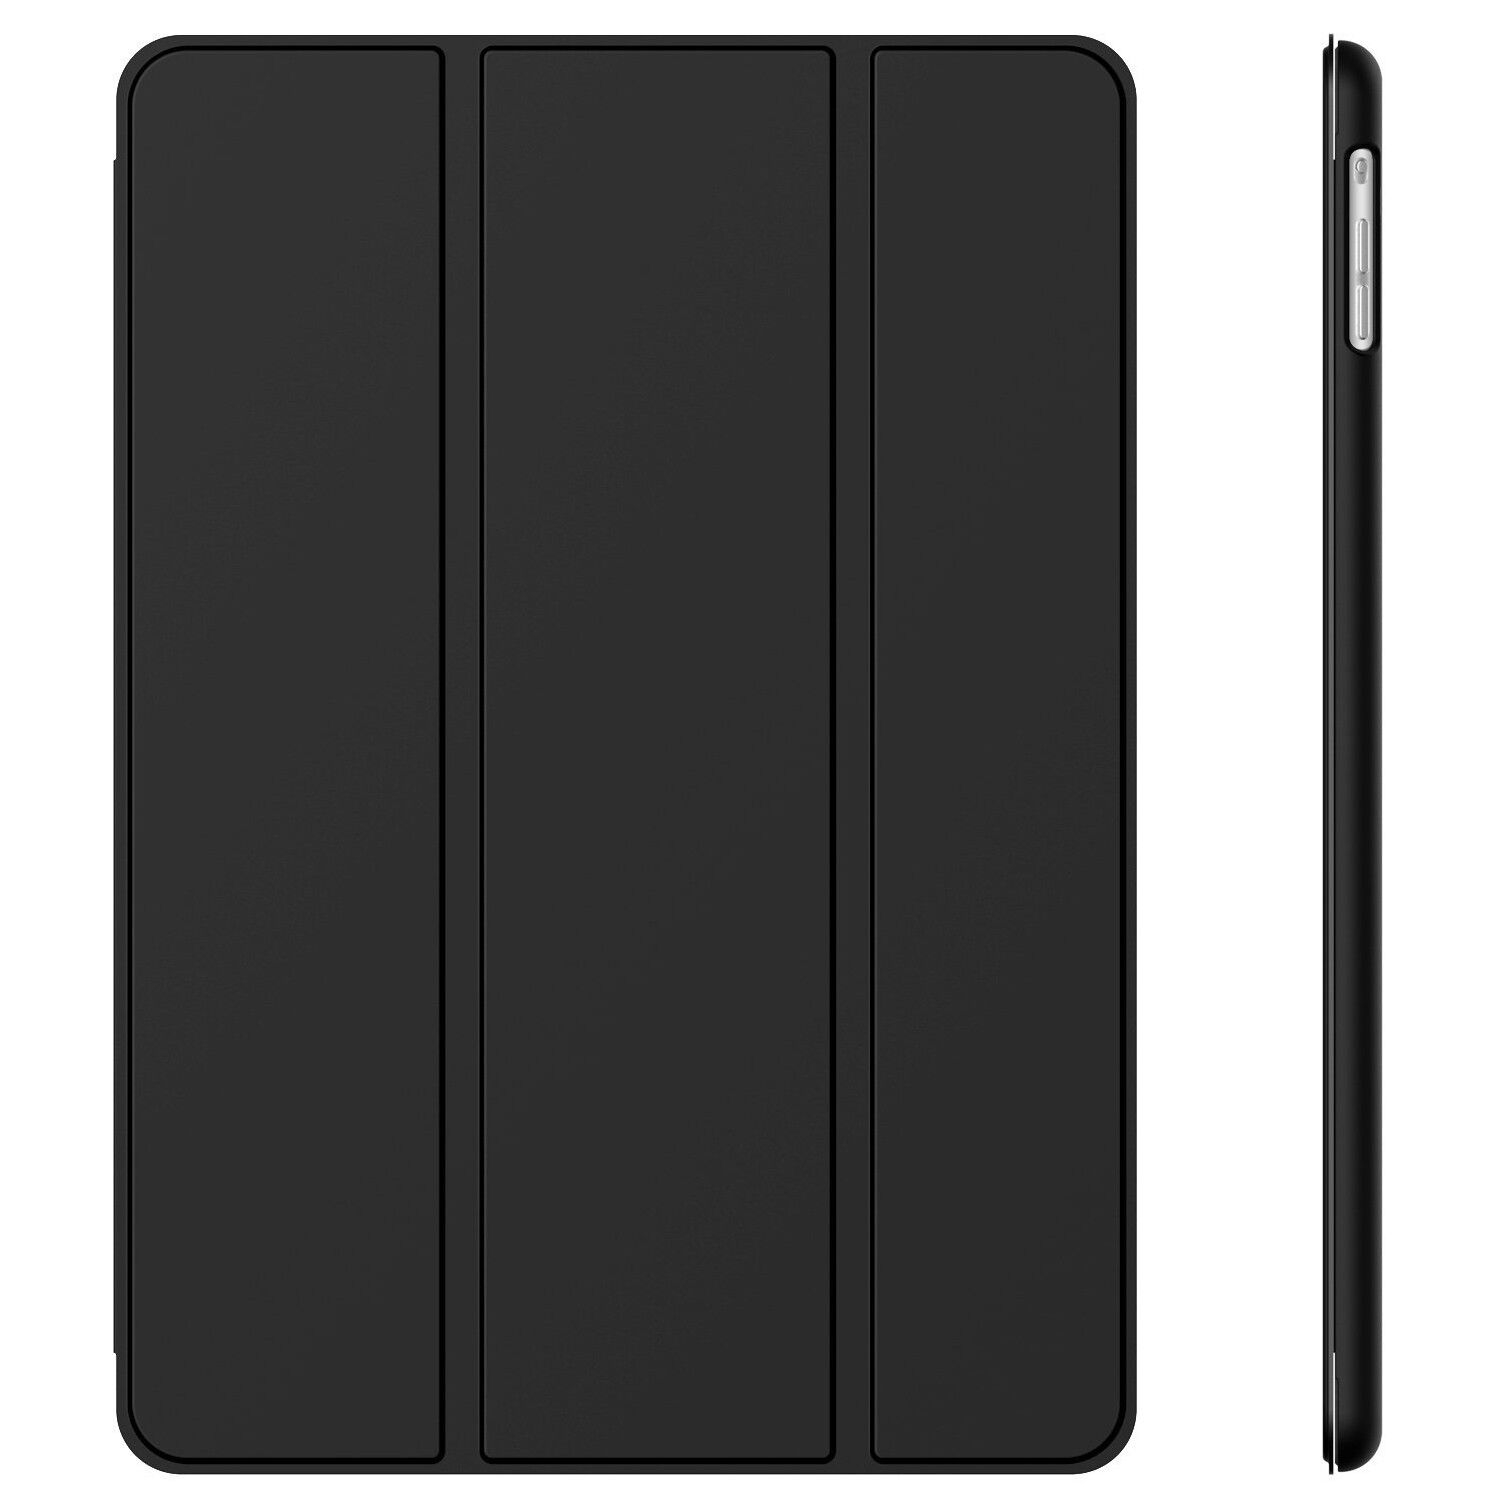 JETech Case for Apple iPad Air 2 and iPad Air 1 Smart Cover